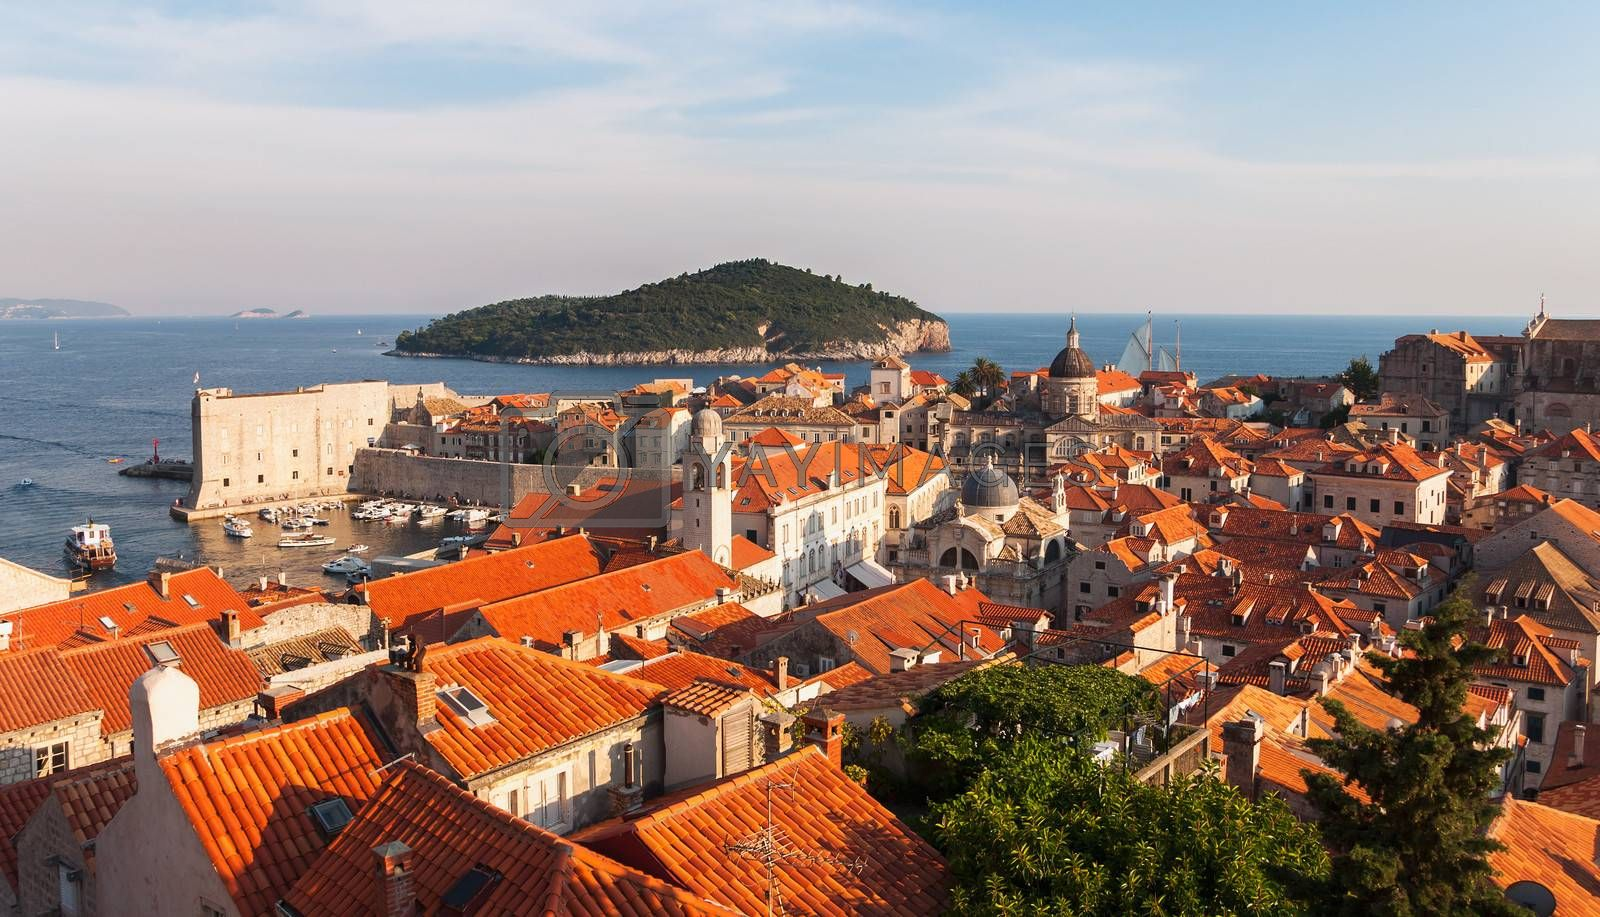 Aerial view on the olnd town pier from the City Walls, Dubrovnik, Croatia.